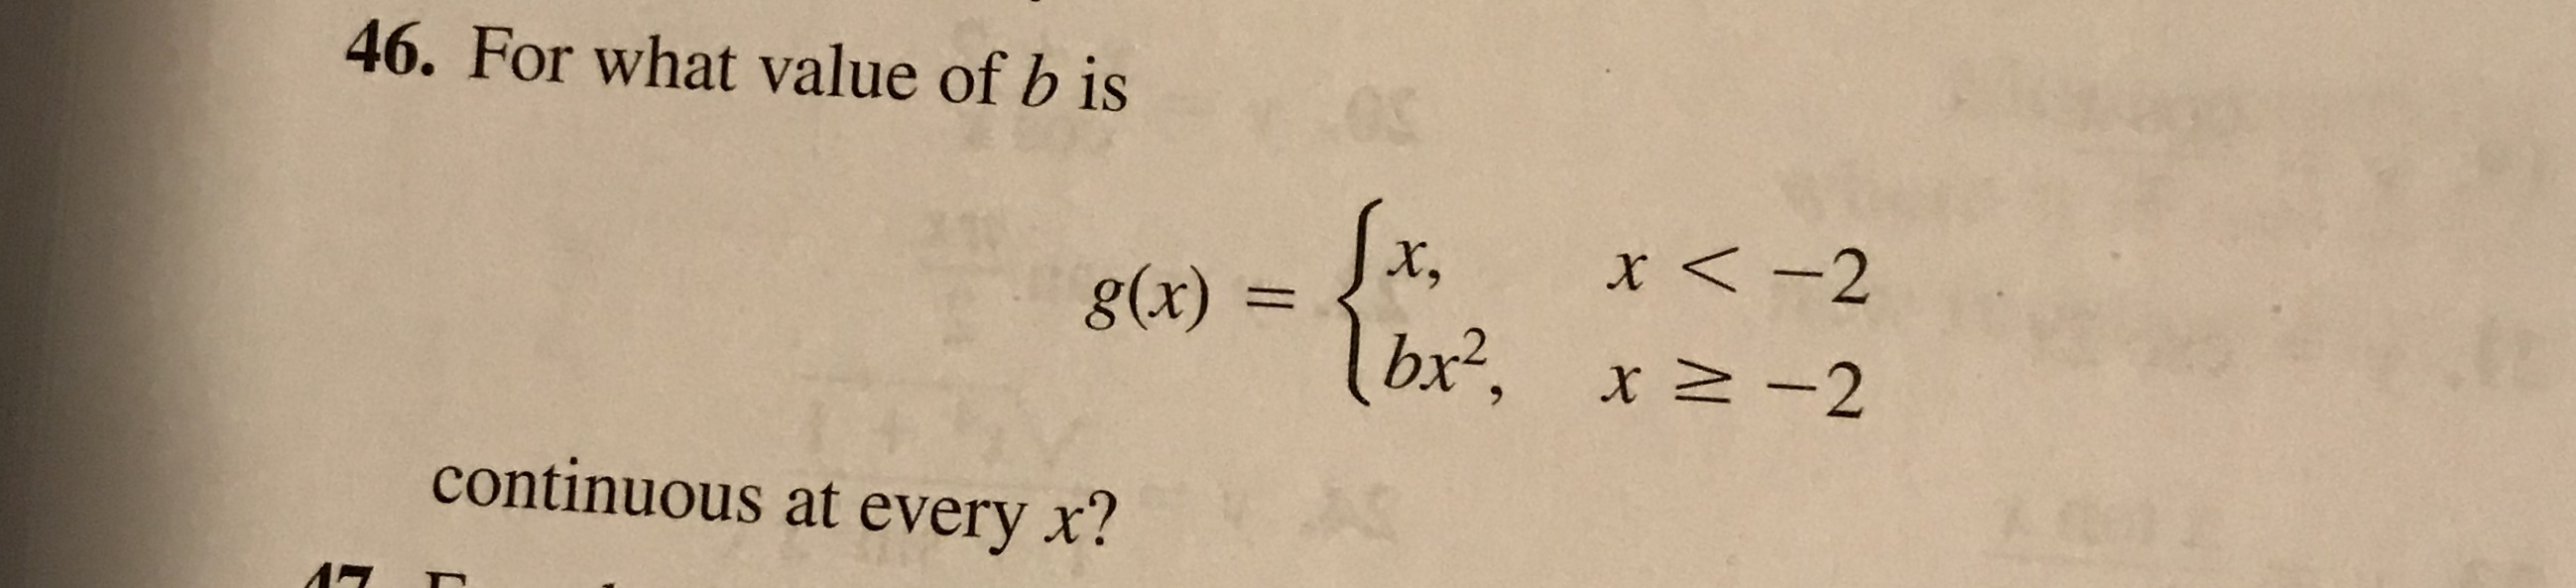 46. For what value of b is 0 Jx. bx2, x -2 x<-2 g(x) = A0 continuous at every x?